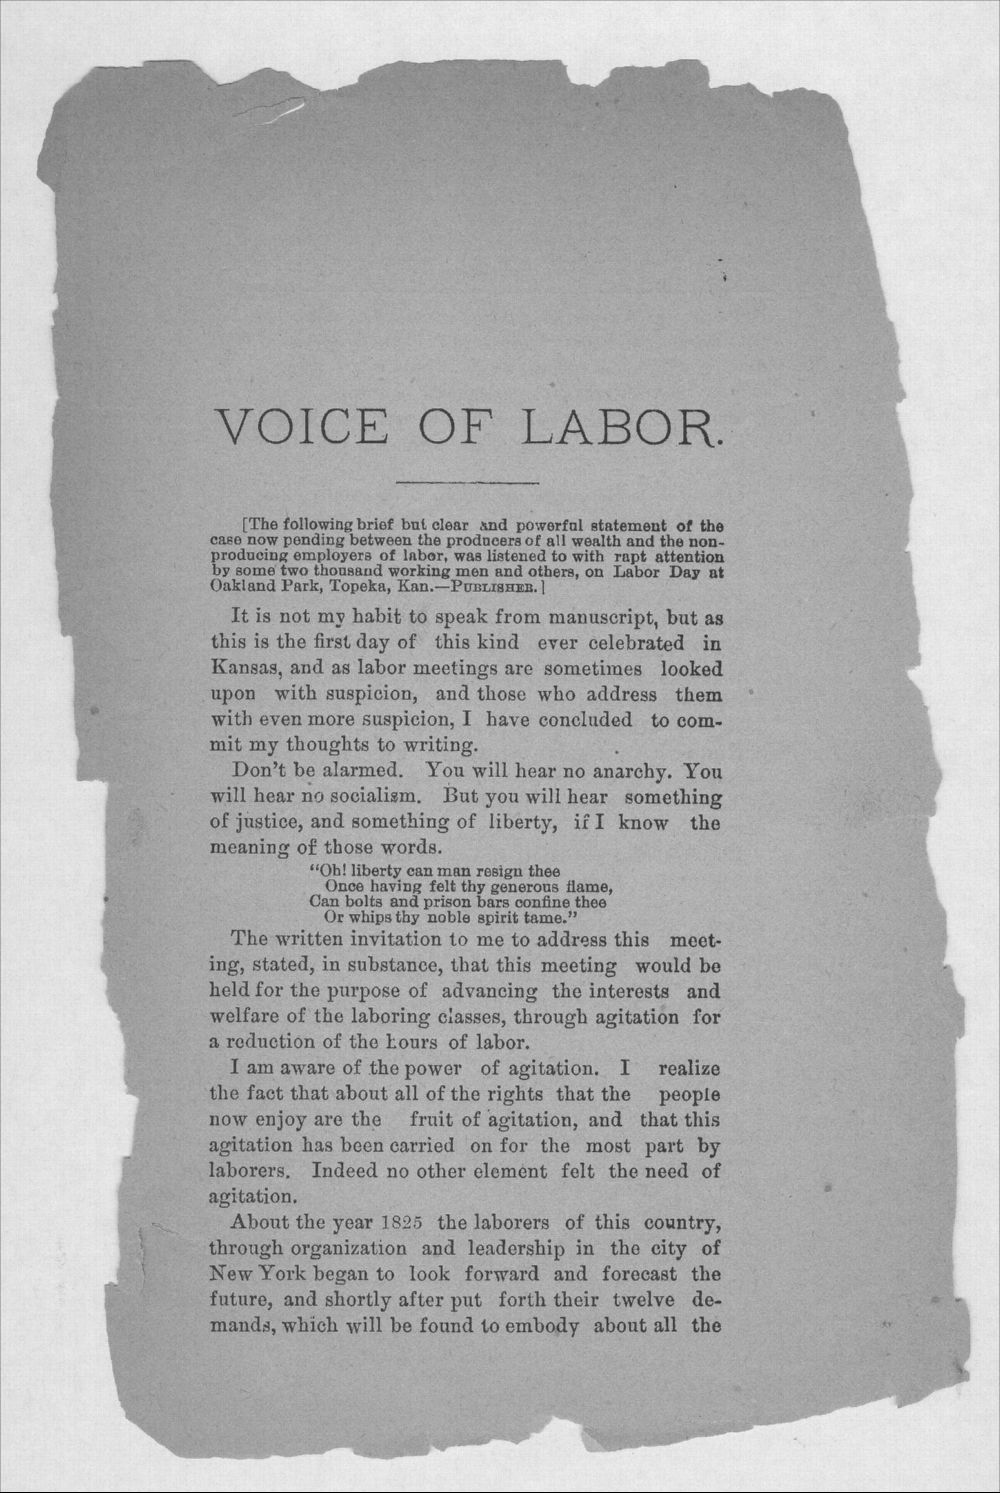 The voice of labor - 3